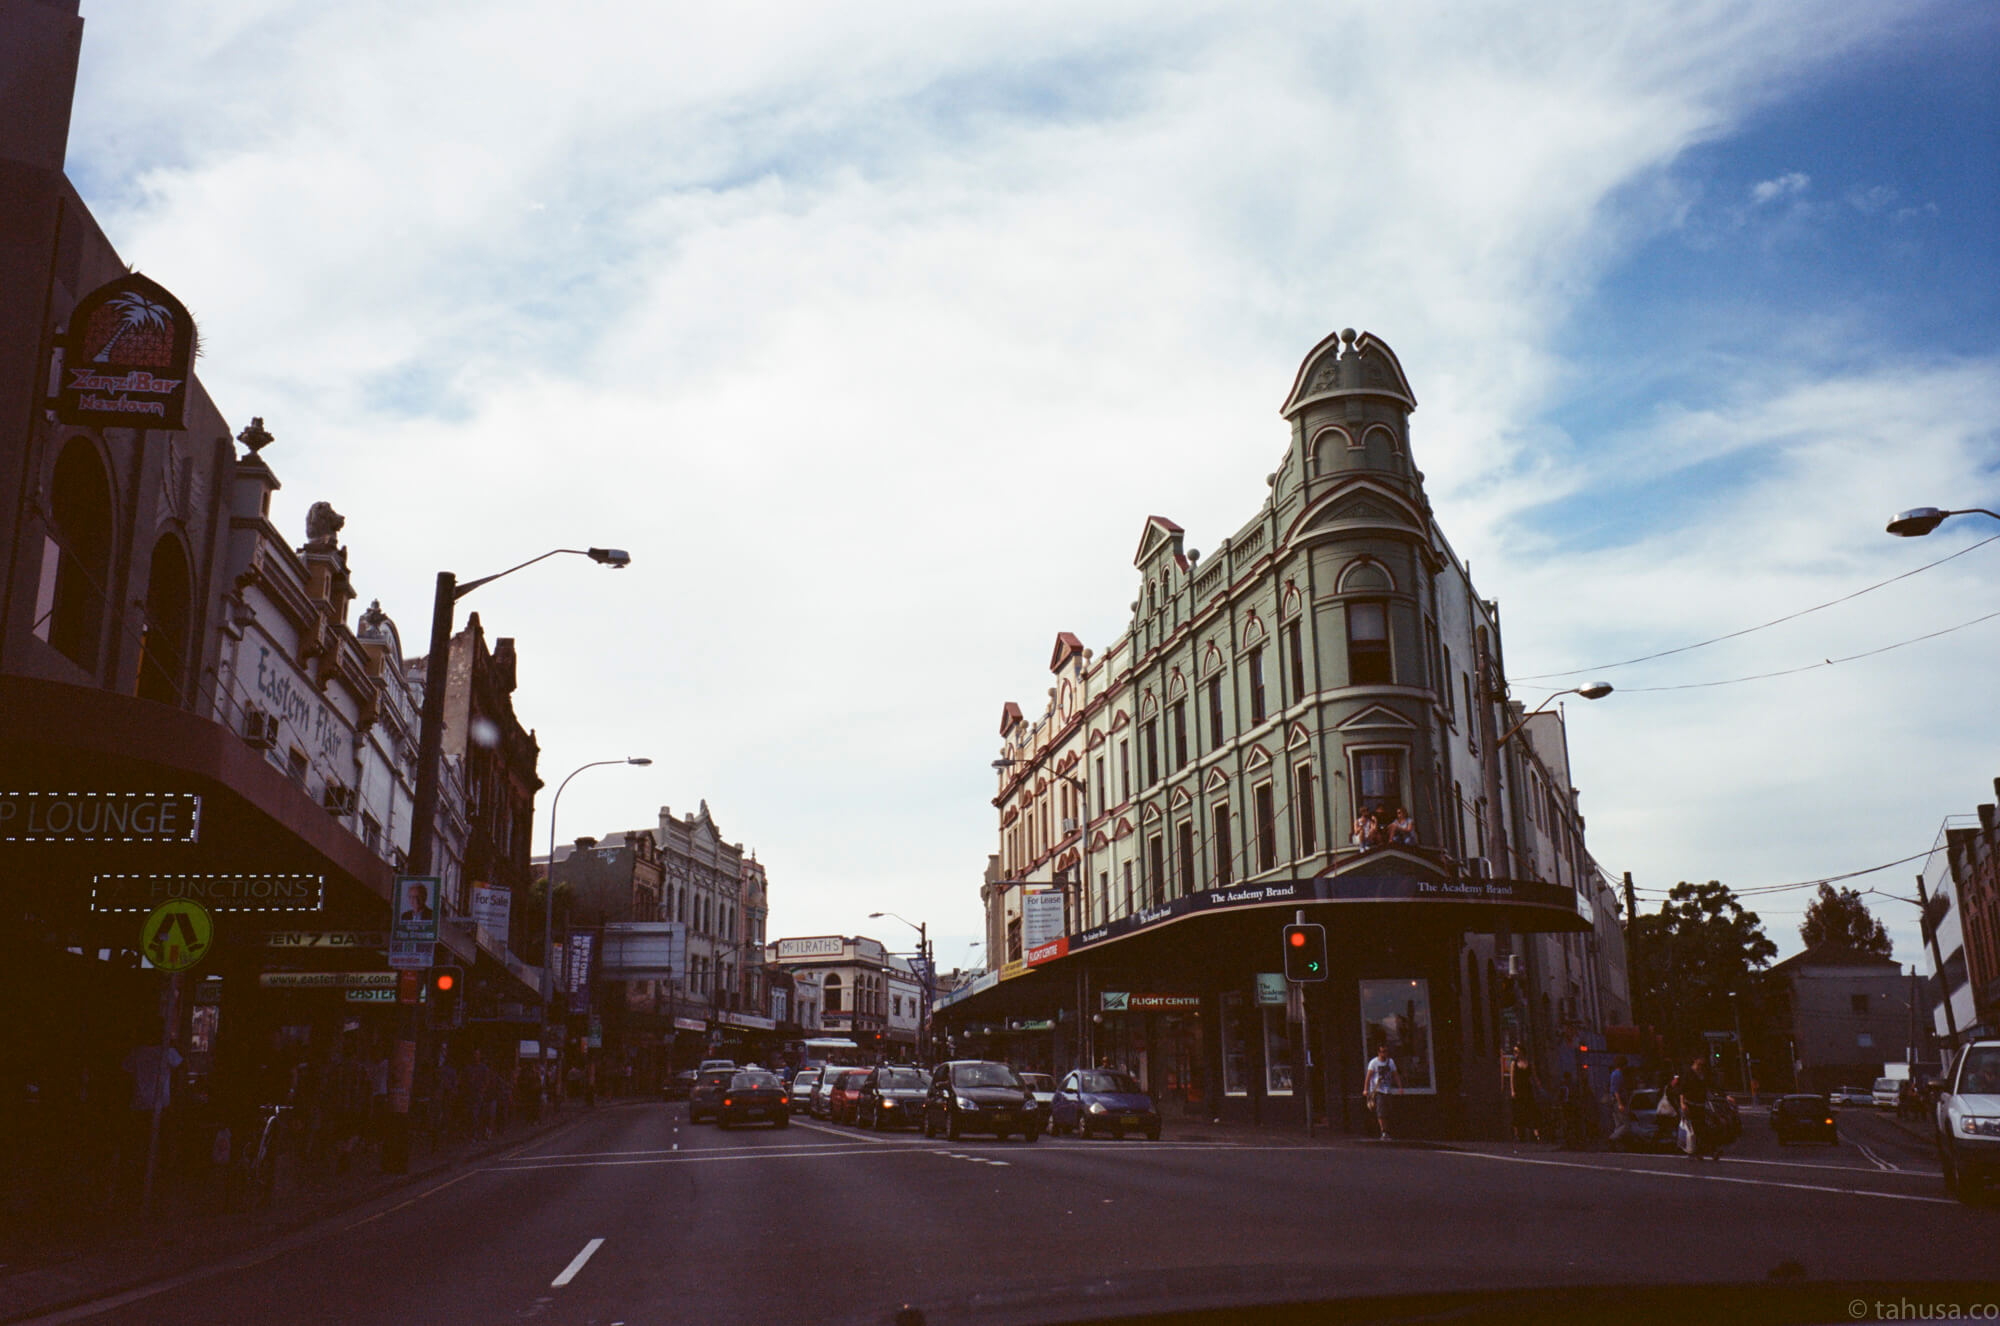 visiting-new-town-sydney-Australia-using-Fuji-fujifilm-Klasse-W-28mm-f2.8-snapshot-point-and-shoot-Klasse-Kodak-Ektar-100-iso-low-speed-film-photography-shooter-Leica-lens-travel